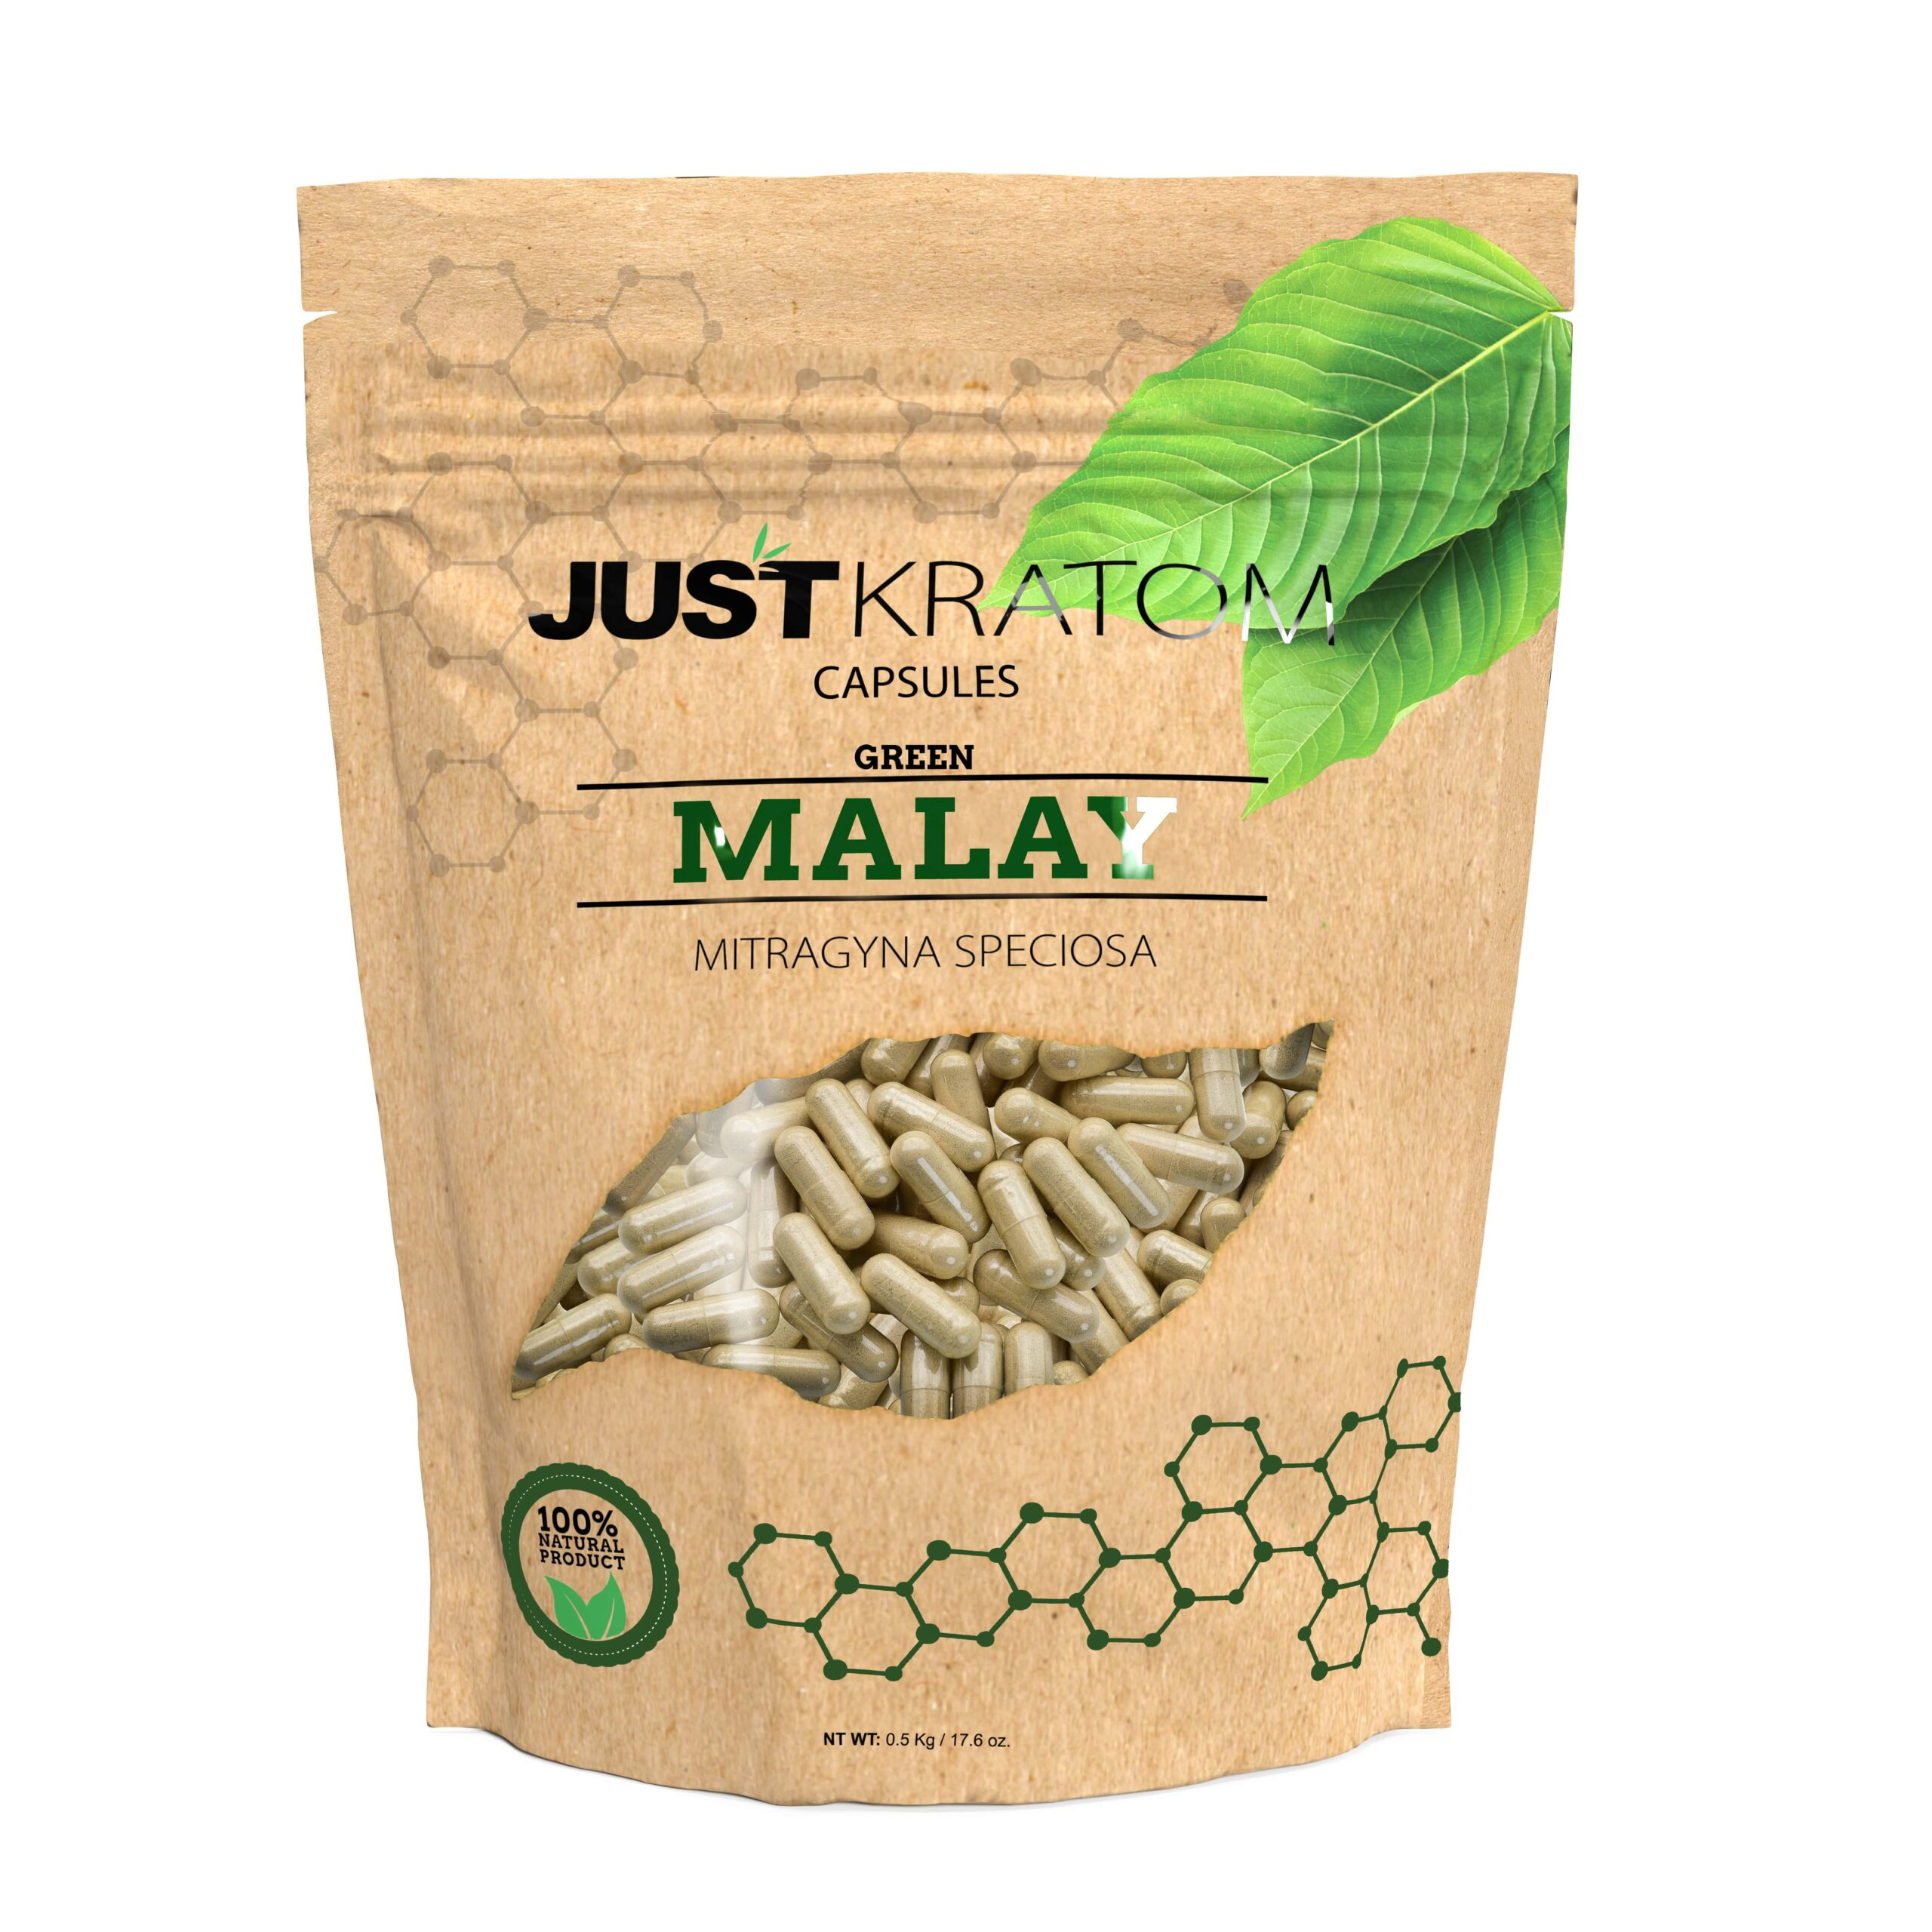 Where To Purchase Kratom